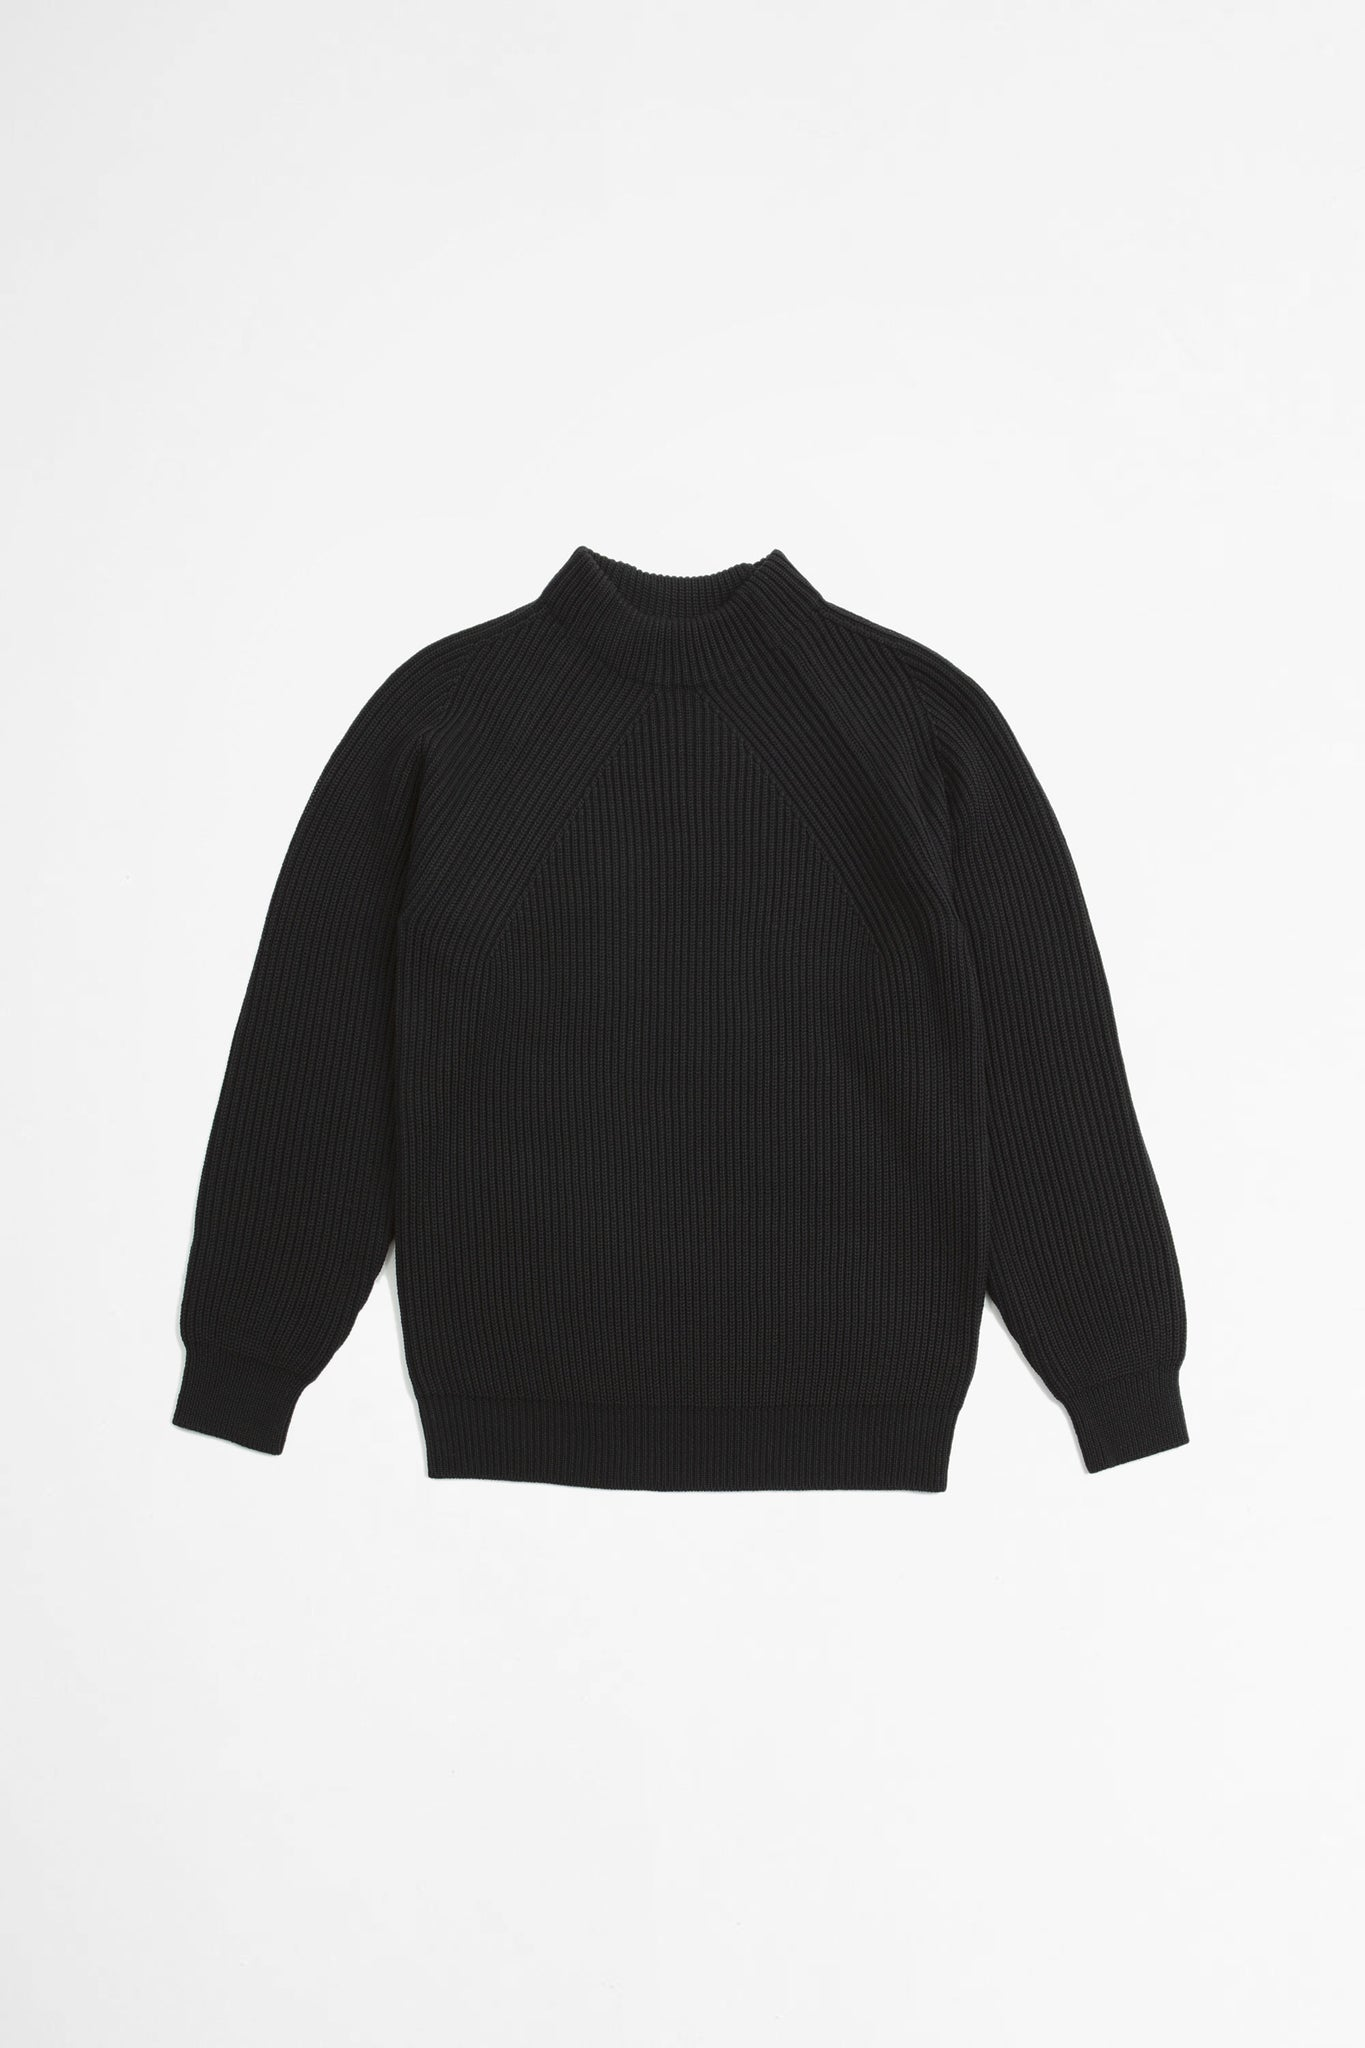 Signature mock neck black